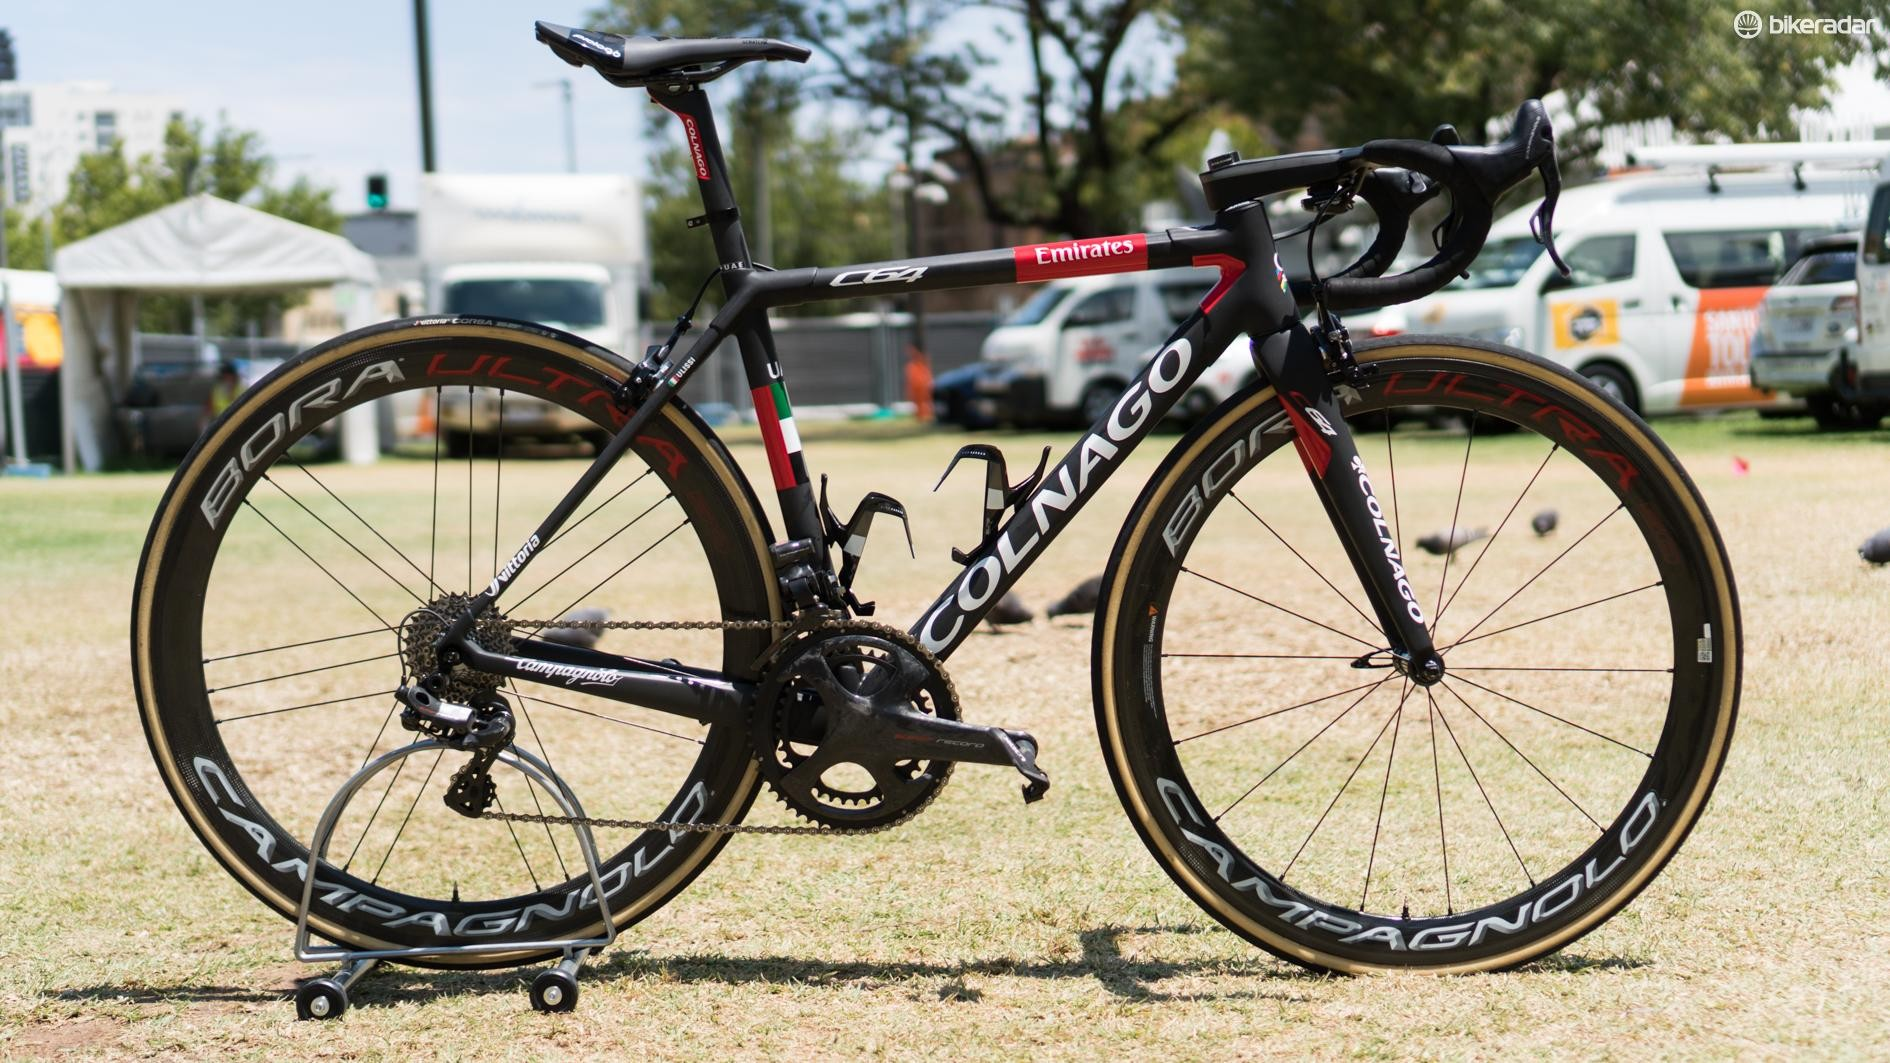 We take a closer look at Diego Ulissi's Colnago C64